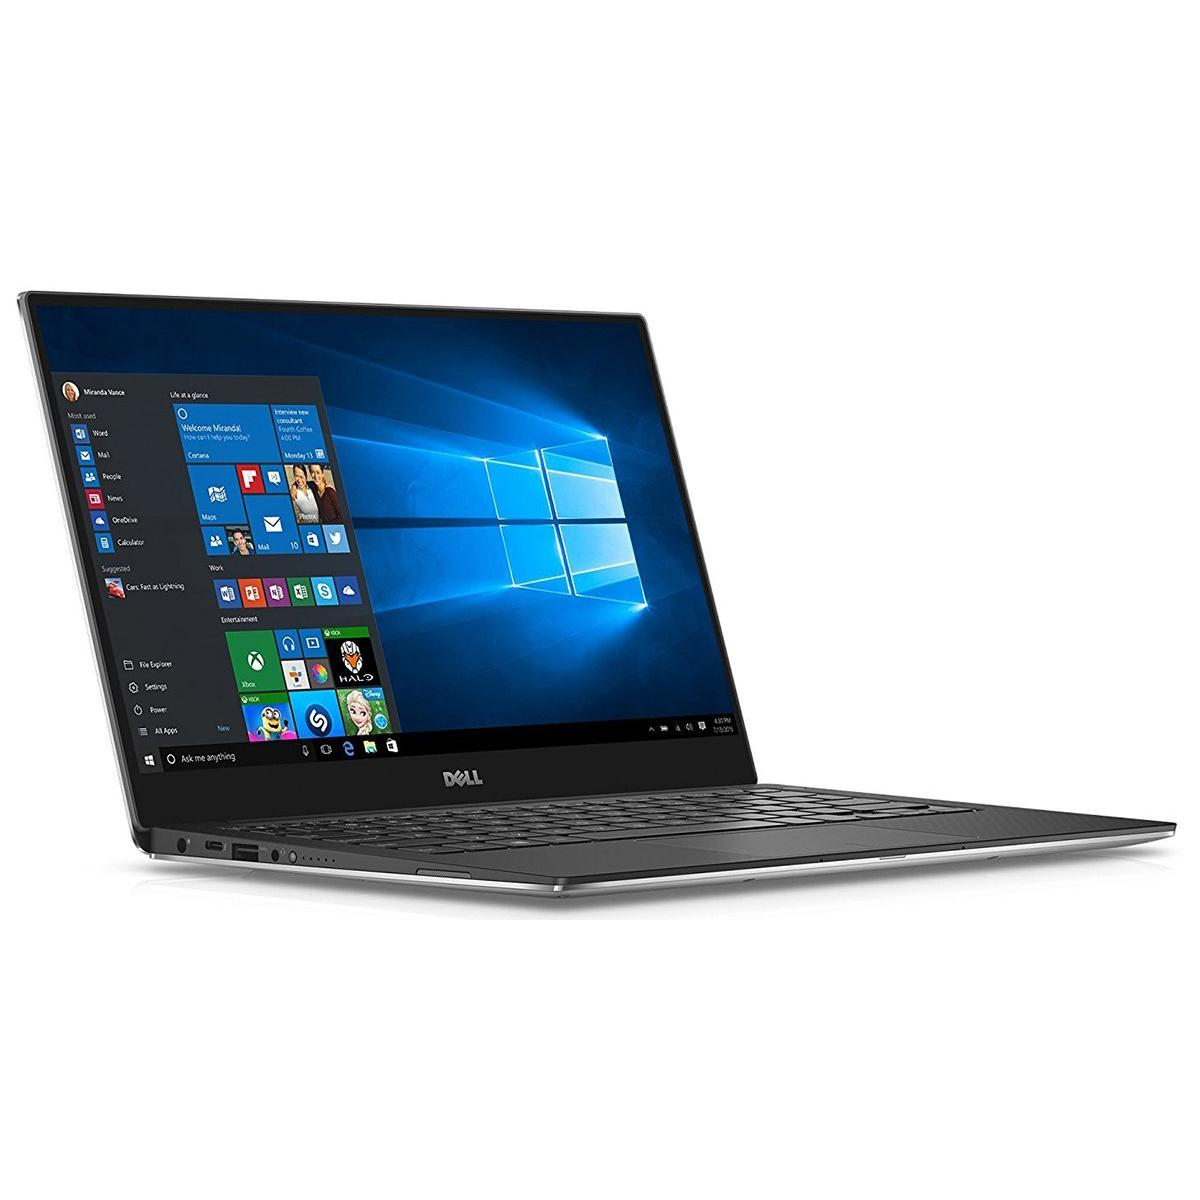 Dell XPS stock image